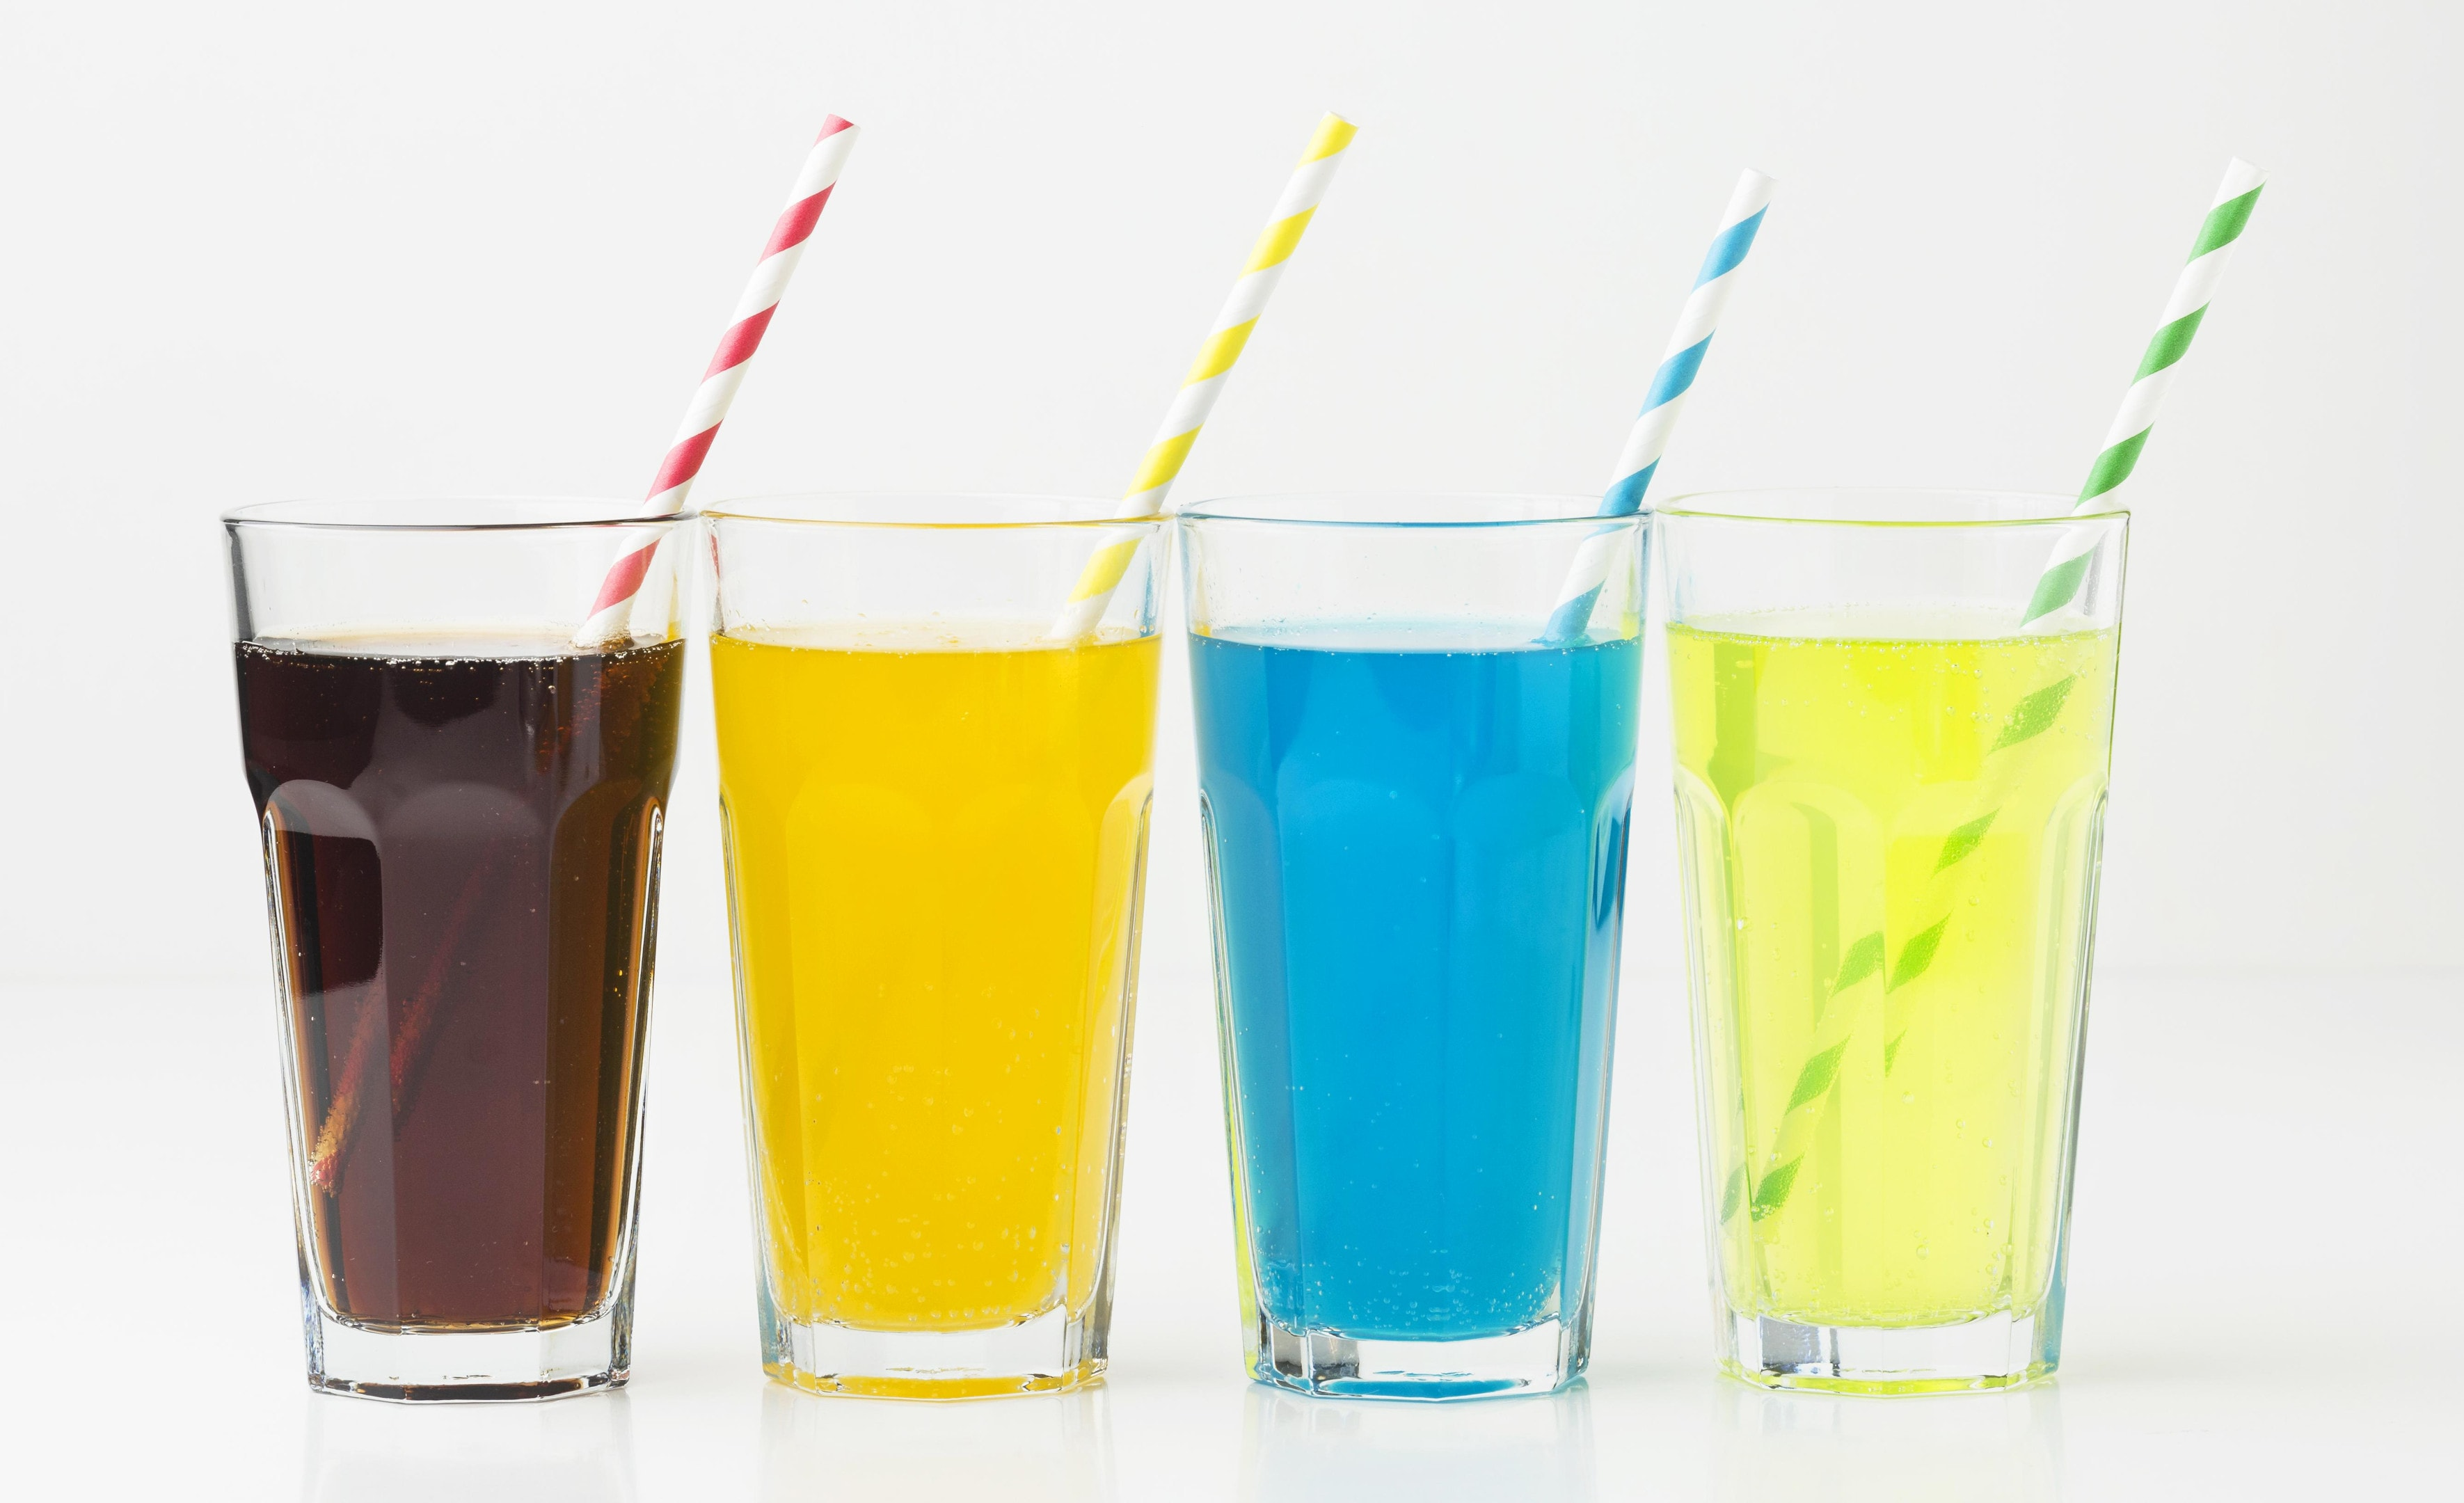 Soft drinks glasses with straws